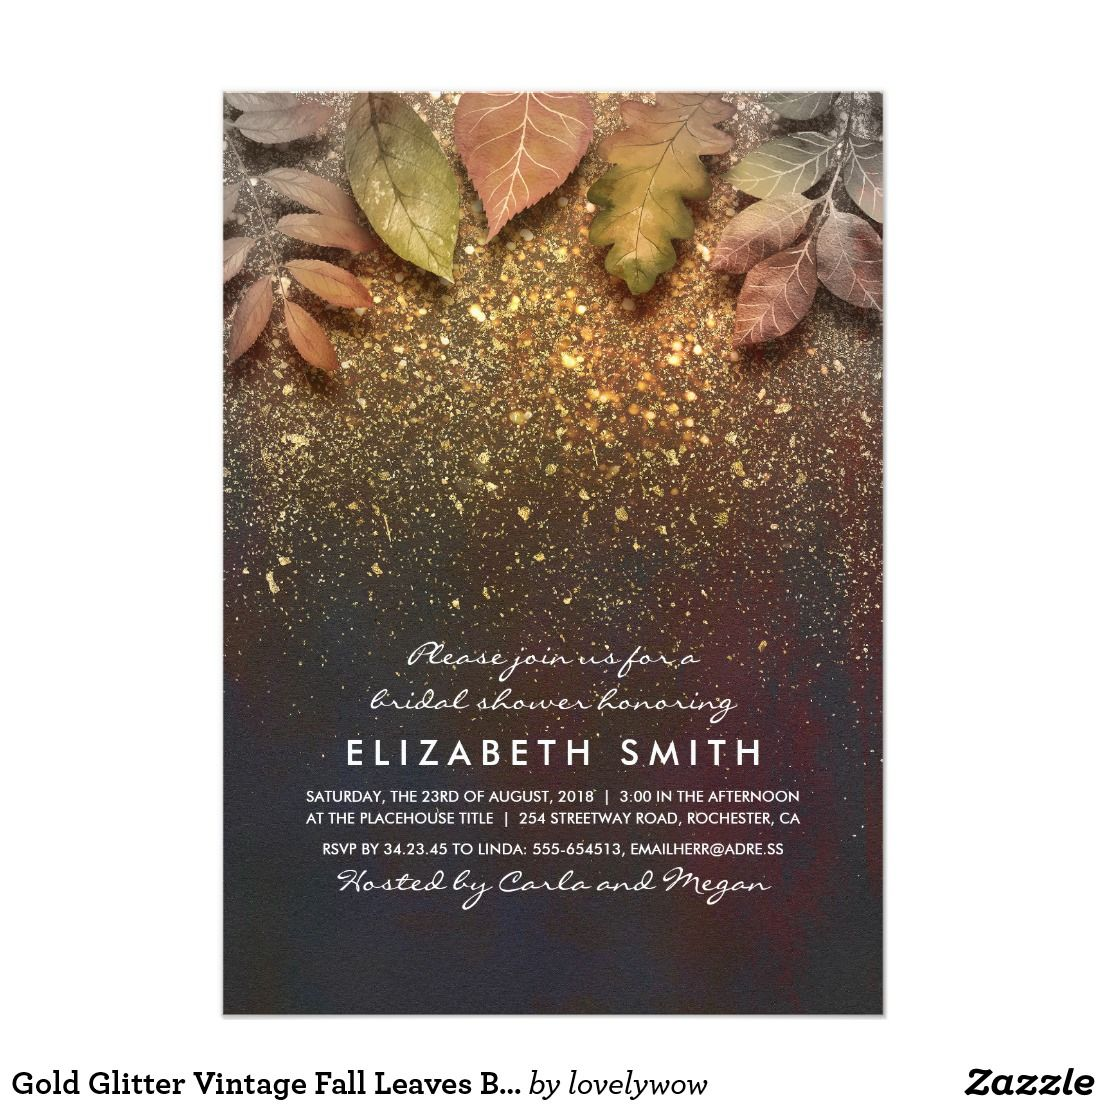 zazzle wedding invitations promo code%0A Gold Glitter Vintage Fall Leaves Bridal Shower